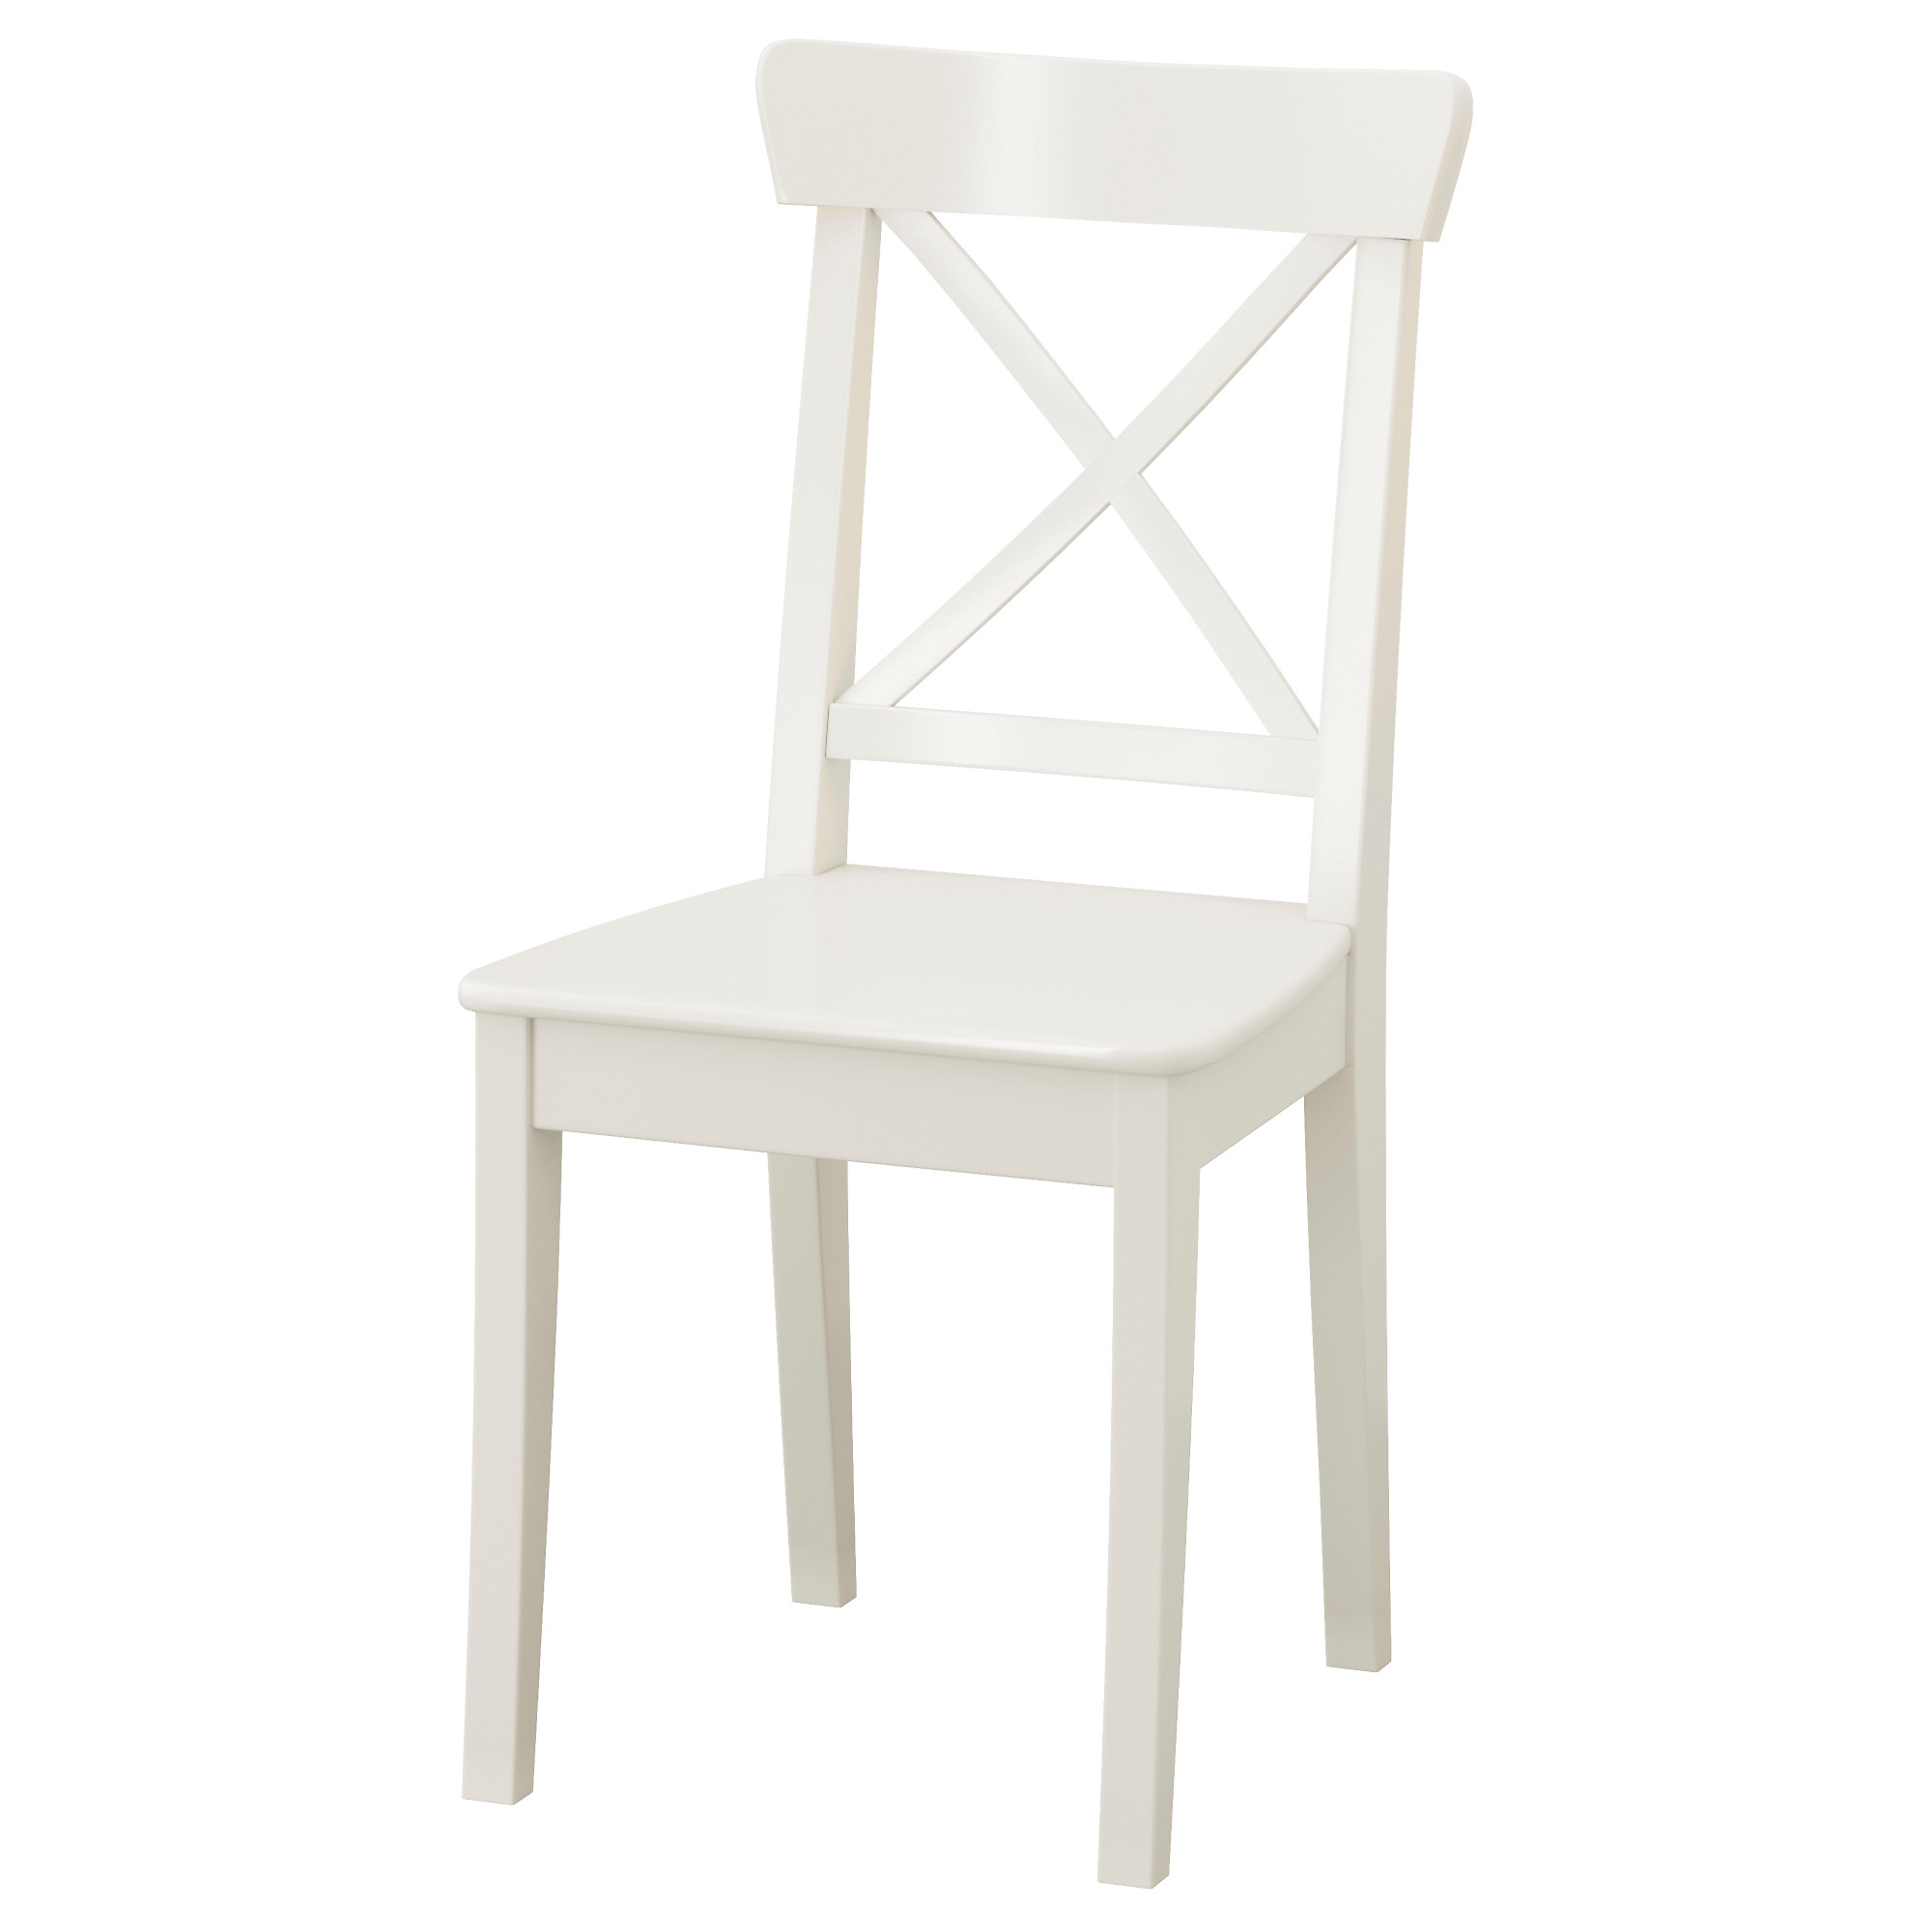 kitchen-chairs-ikea-photo-6